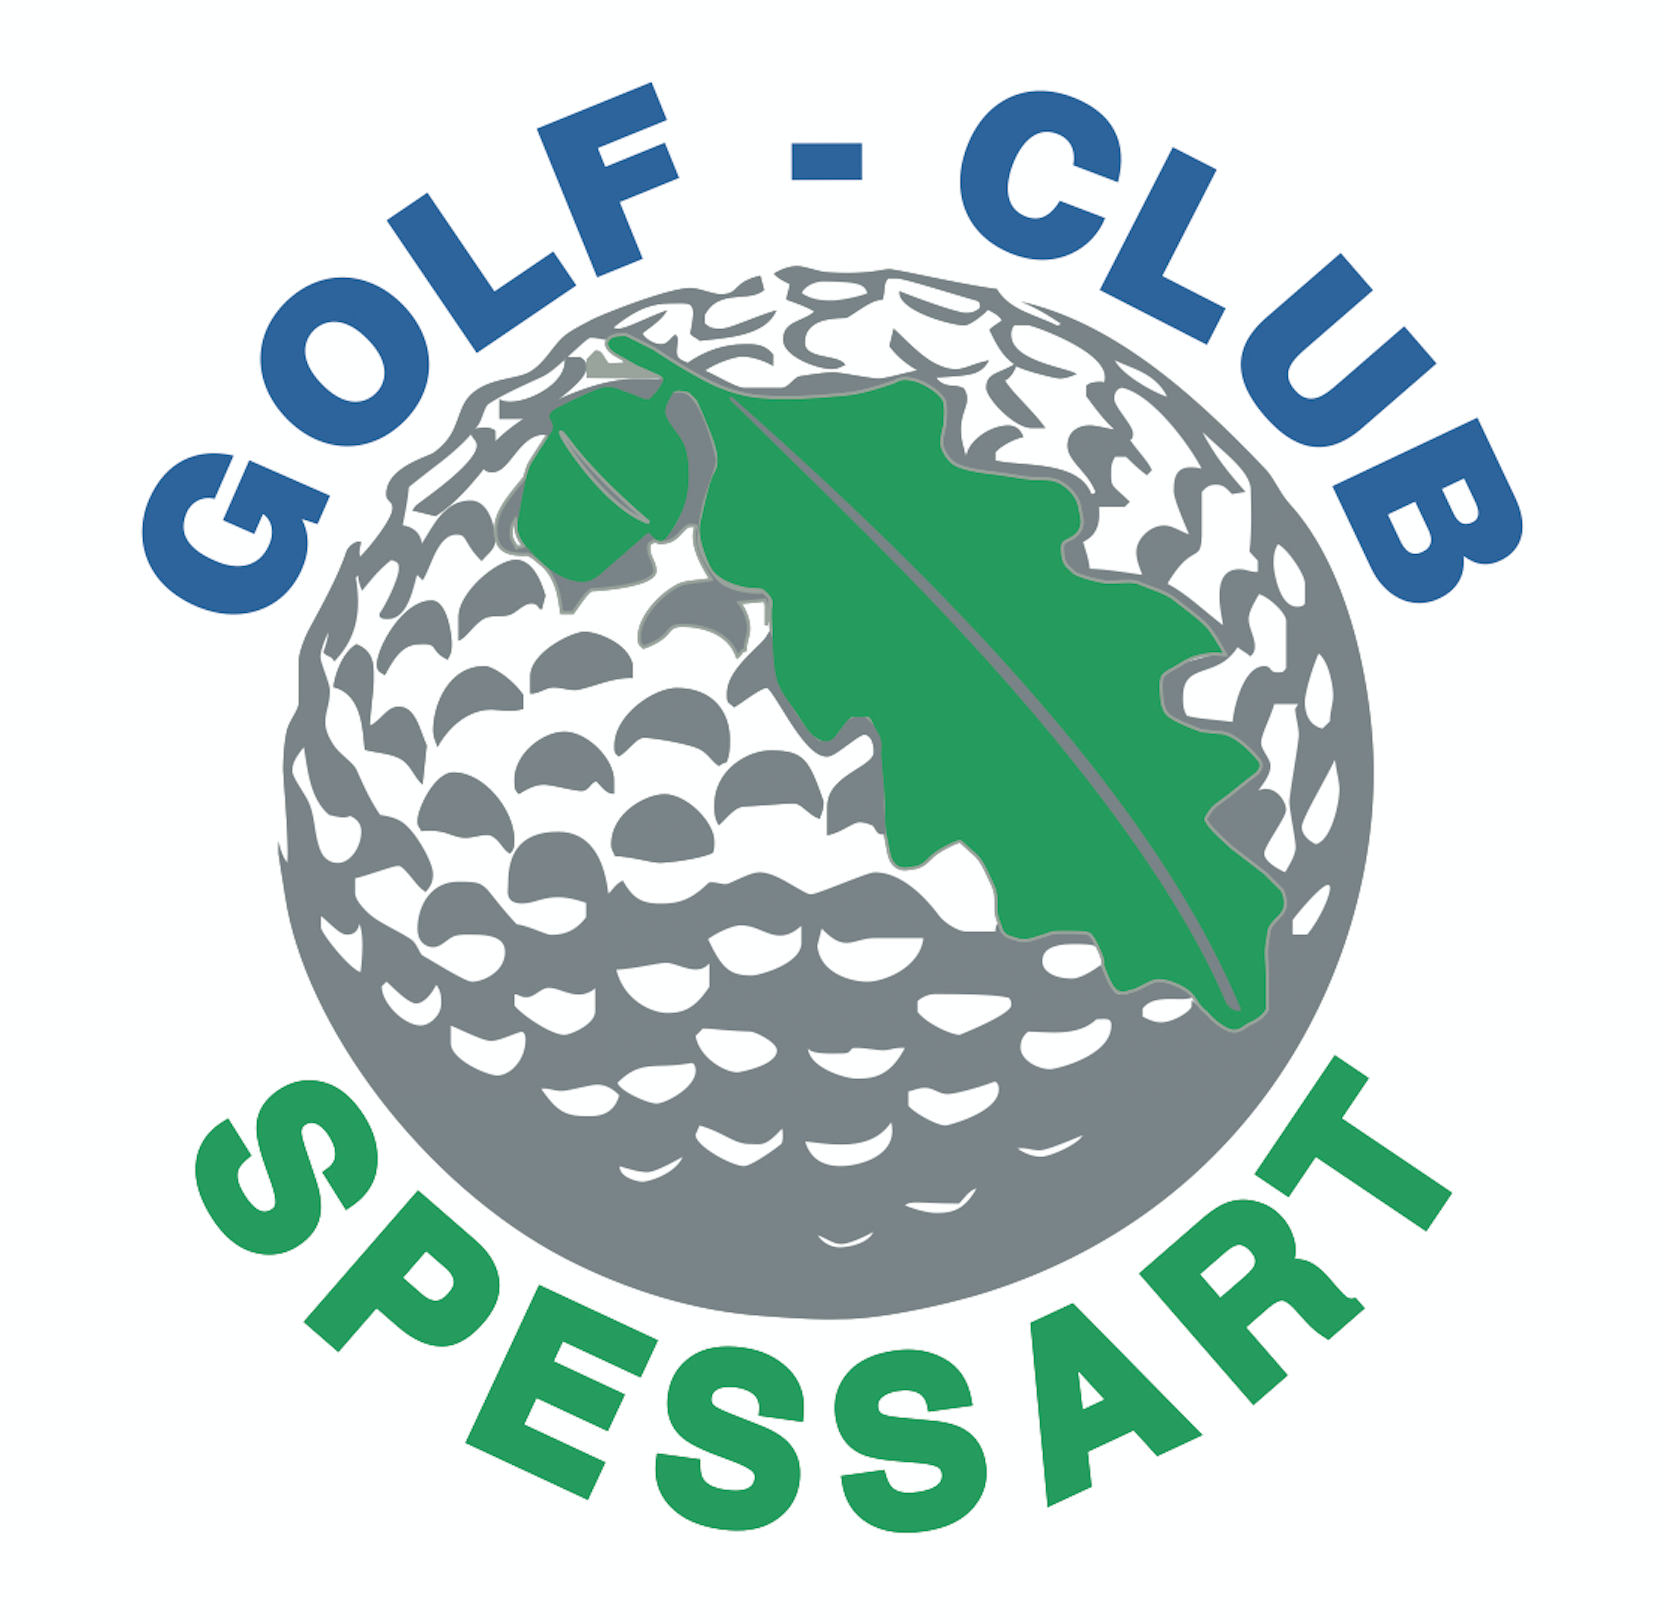 Billy Textilstickerei - Golf Logo Besticken.png